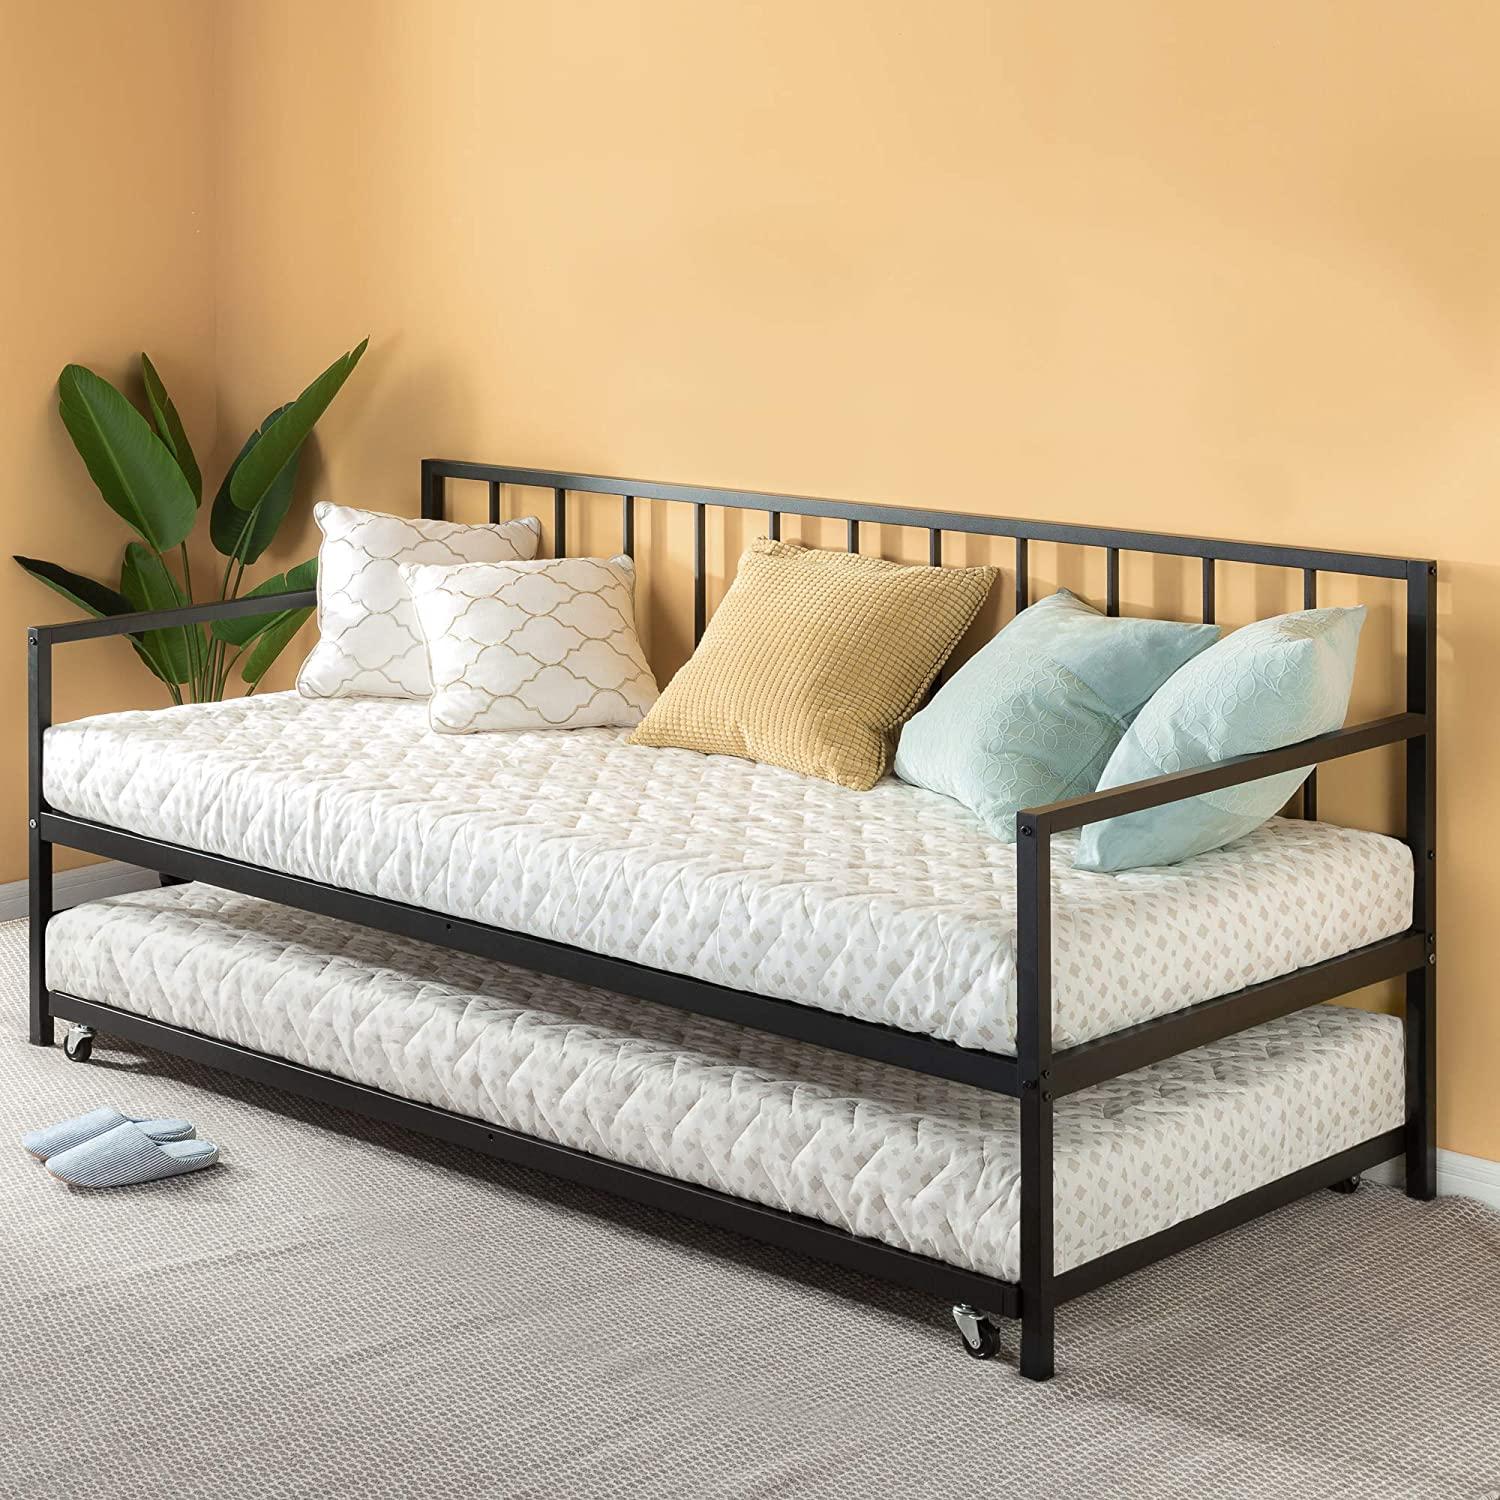 Amazon Com Zinus Eden Twin Daybed And Trundle Set Premium Steel Slat Support Daybed And Roll Out Trundle Accommodate Twin Size Mattresses Sold Separately Furniture Decor